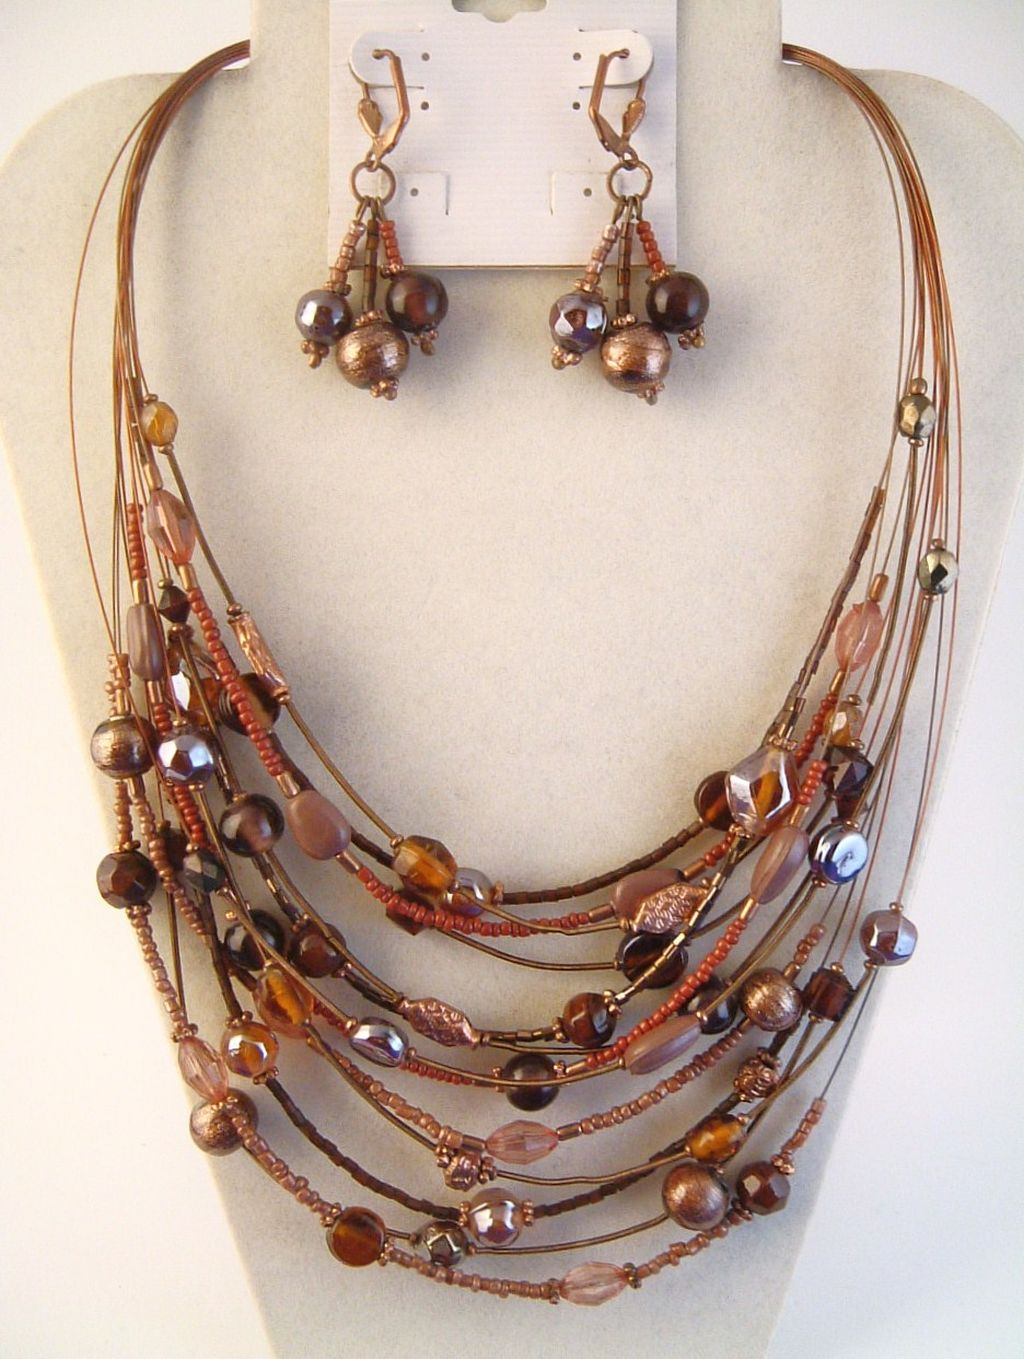 Multi-Strings Copper & Glass Beads Necklace Earring Jewelry Set